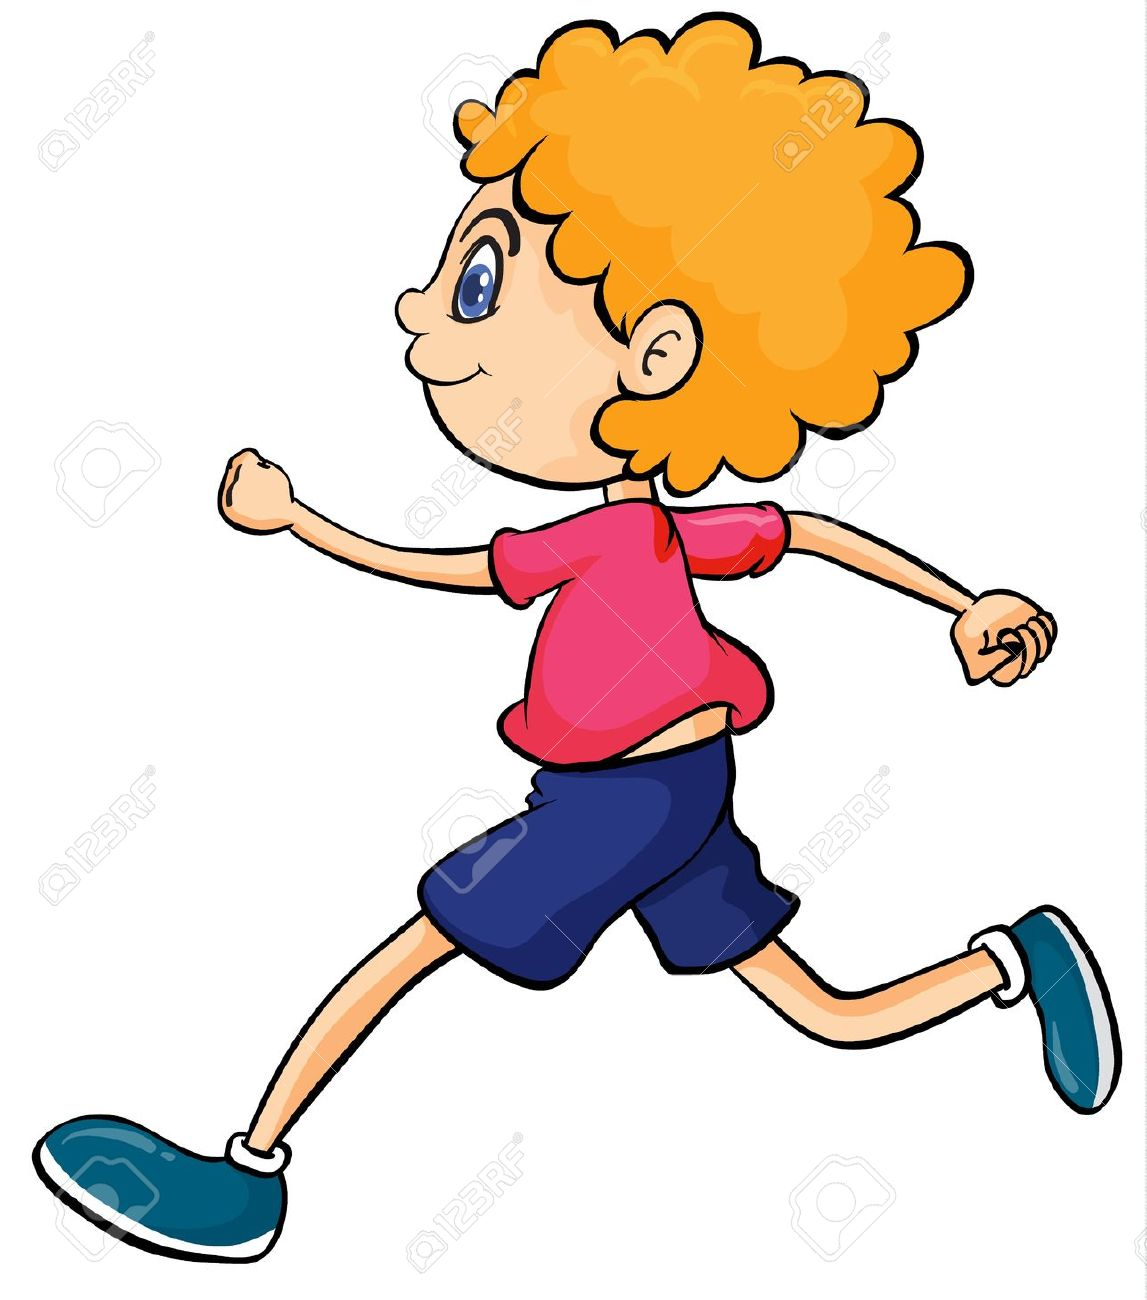 1147x1300 Run Clipart 17100312 Illustration Of A Boy Running On A White